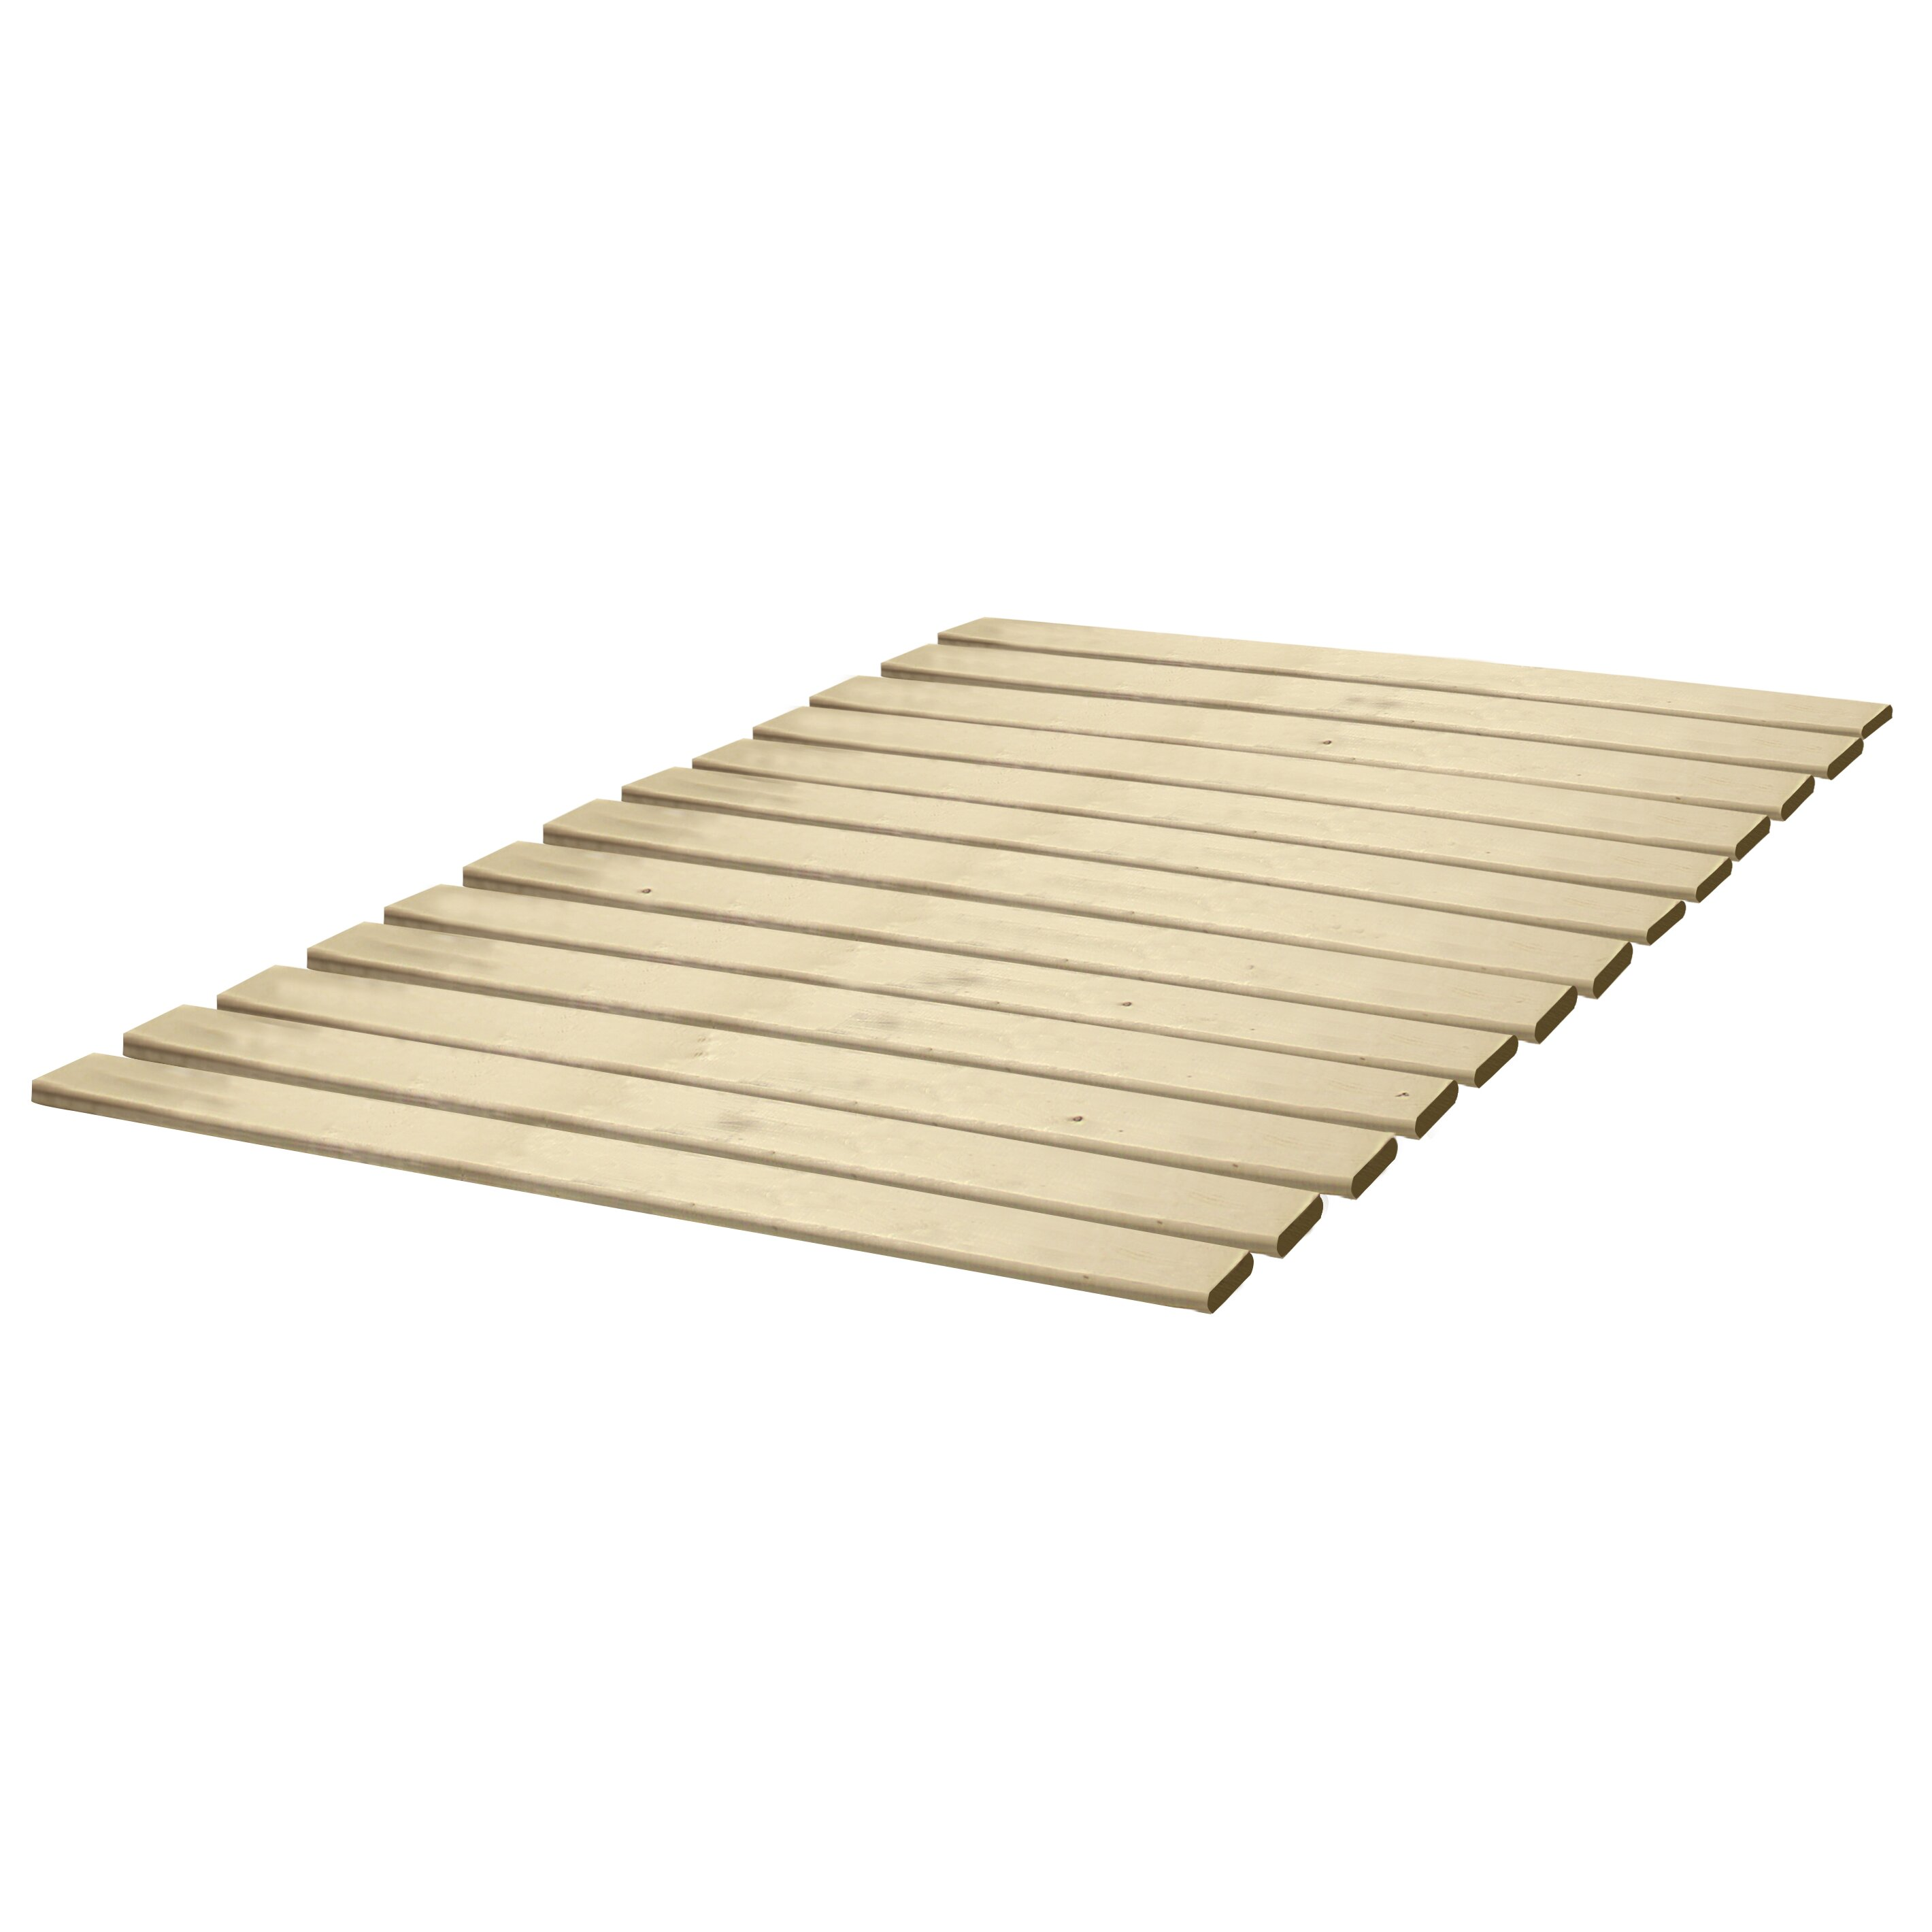 classic brands attached solid wood bed support slats bunkie board